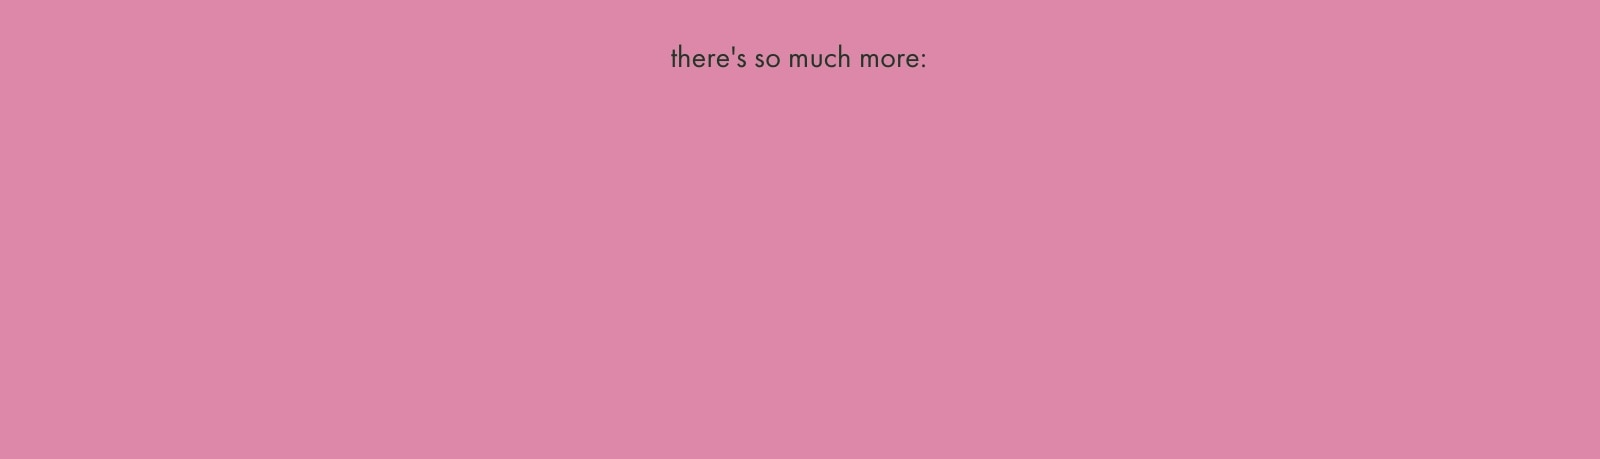 there's so much more: